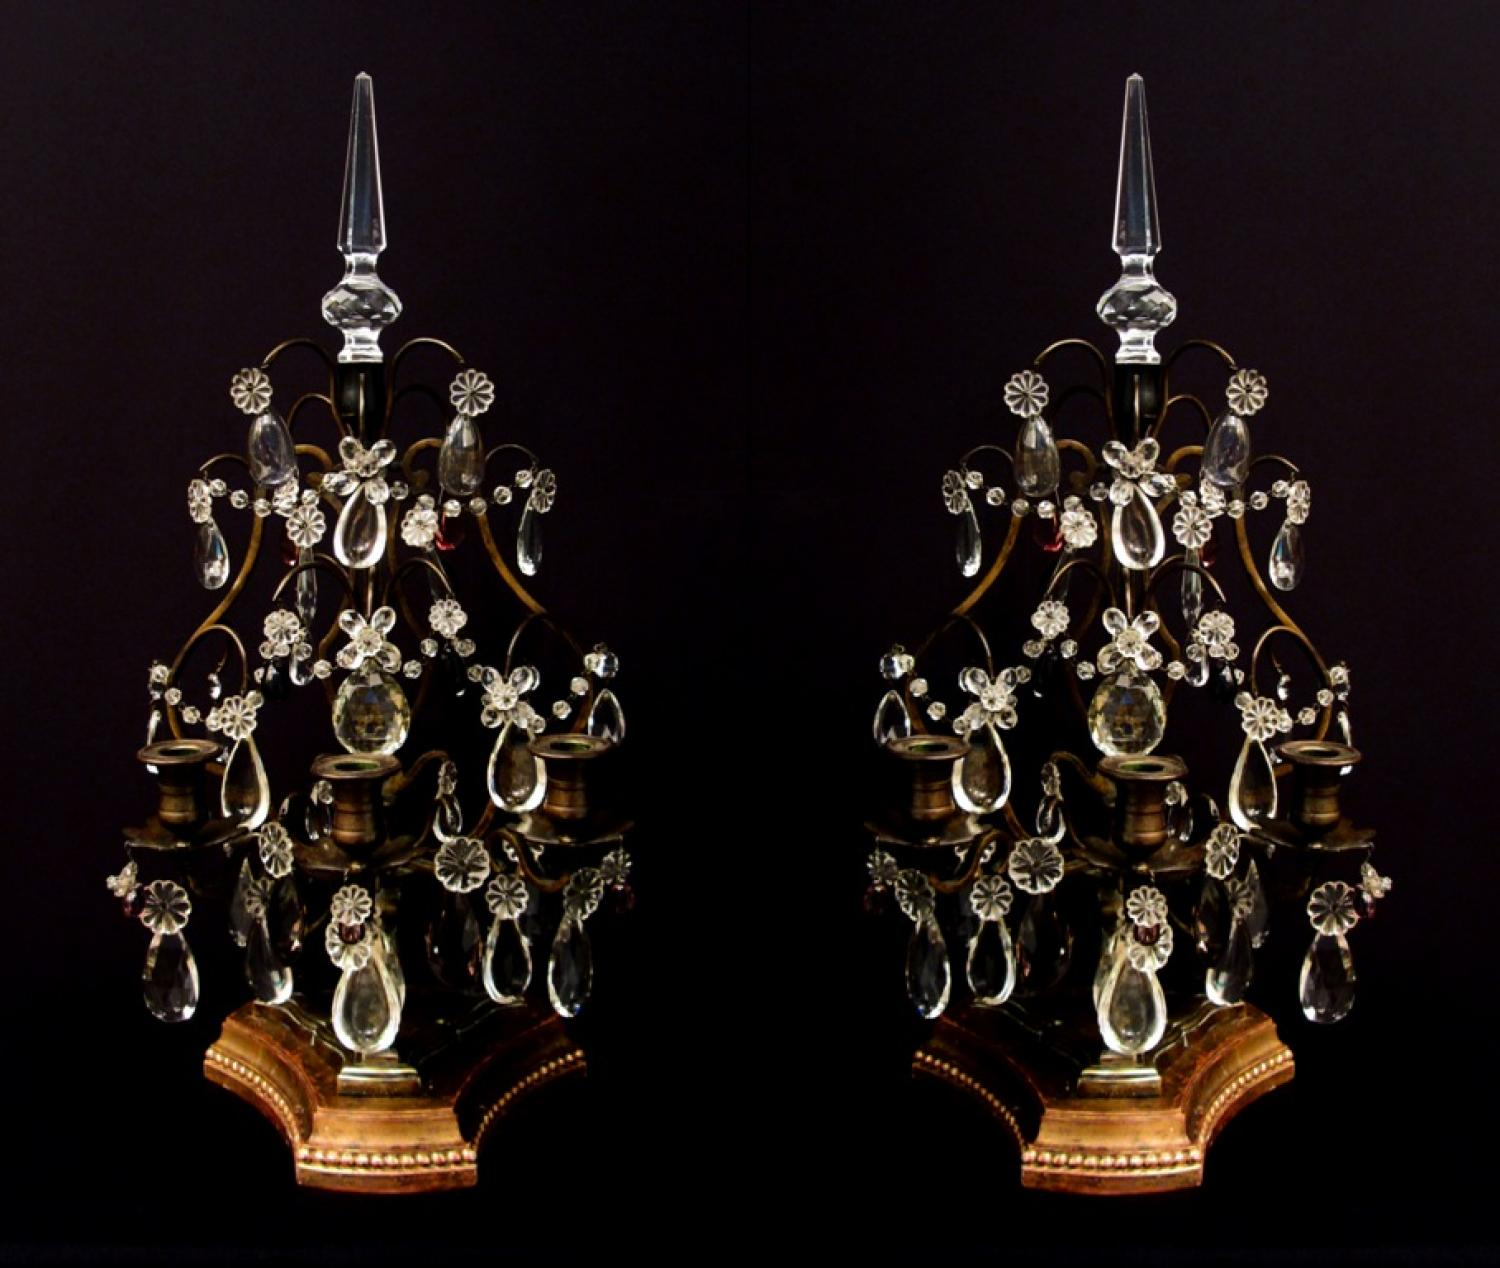 A pair of bronze and crystal girandoles